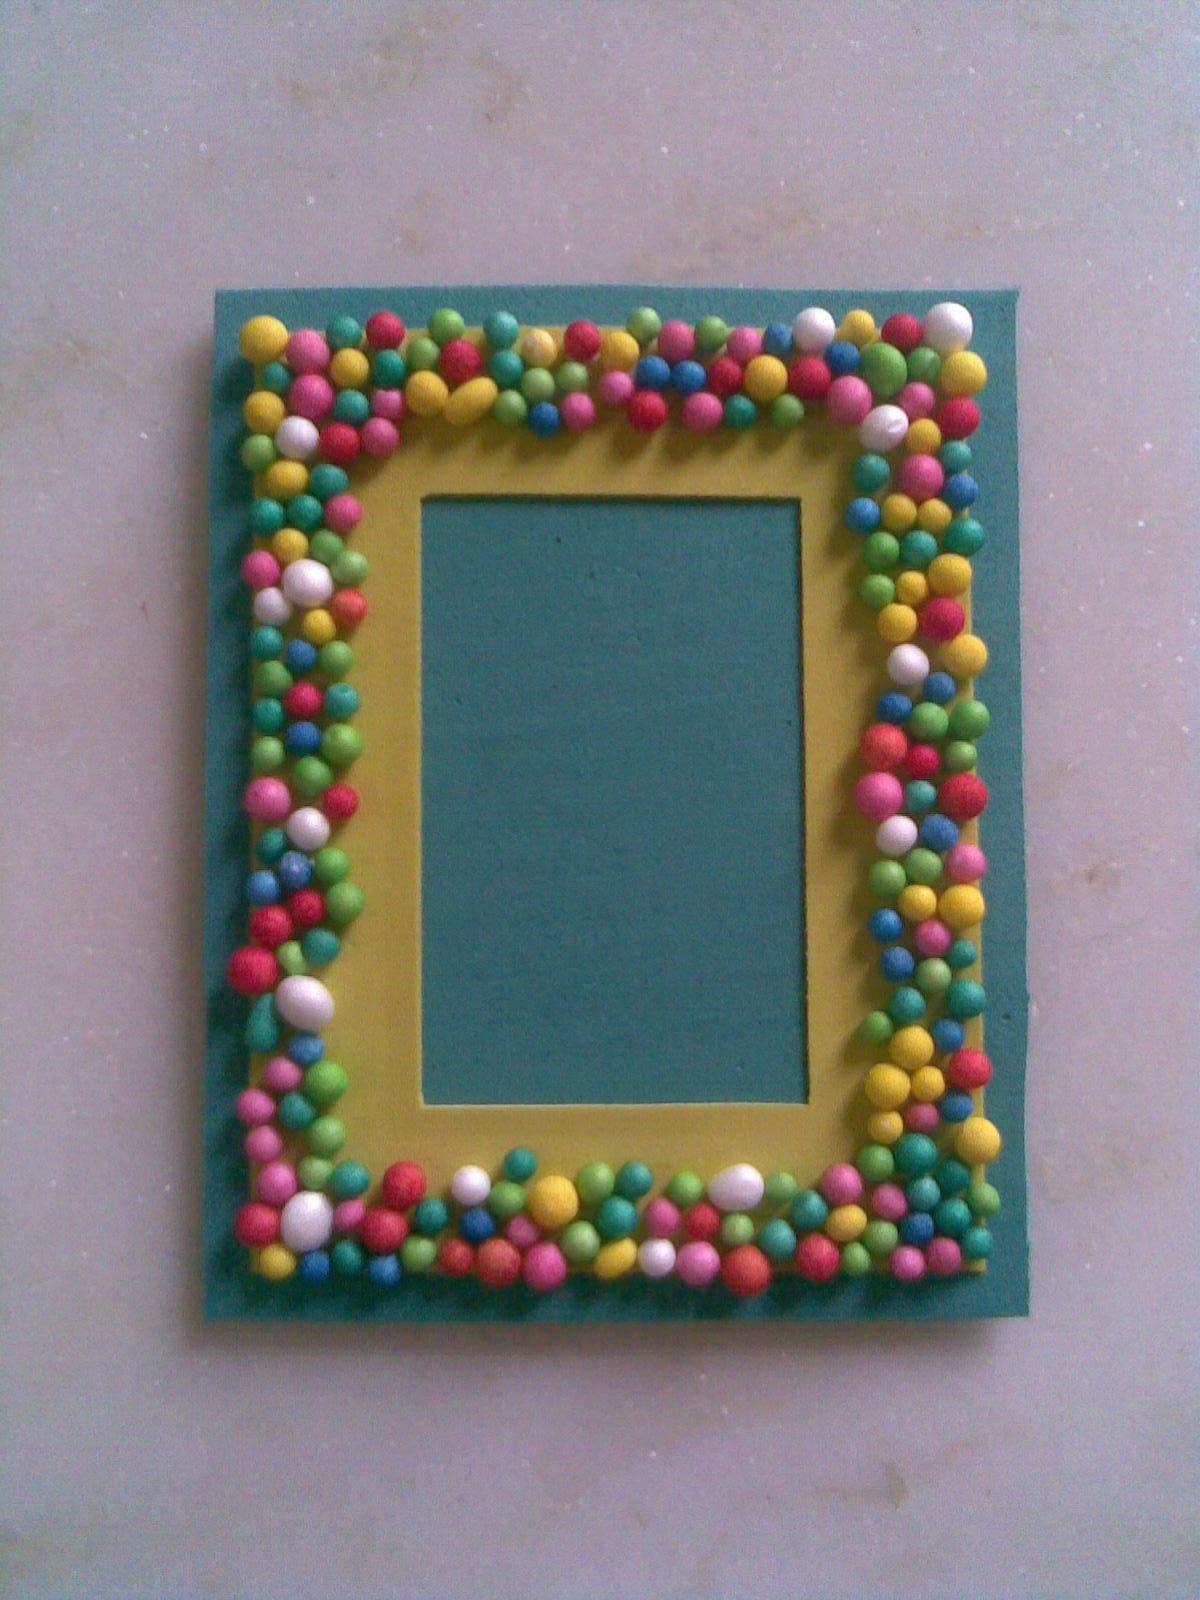 Stylized Java Mirror How To Make A Frame S On How To Make A Frame Photo Frame How To Make A Frame Photo Her Embellishing On How To Make A Frame Photo Frame Free Tutorial photos How To Make A Frame